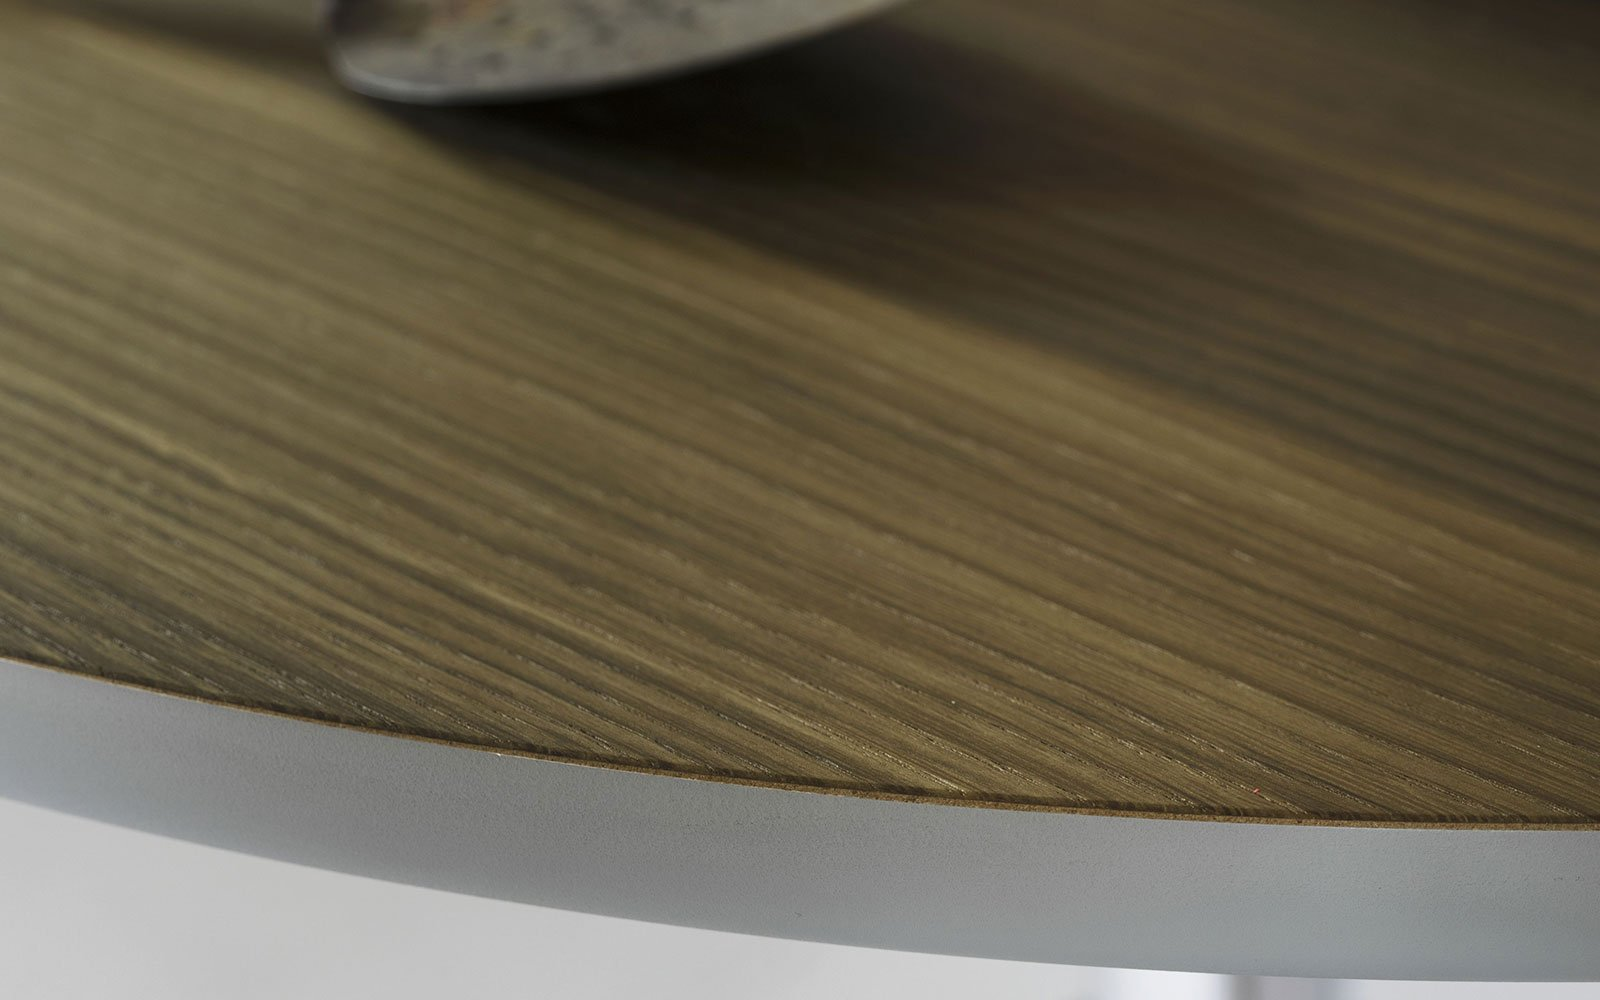 Maciste-Bistro-Table-top-detail-wood